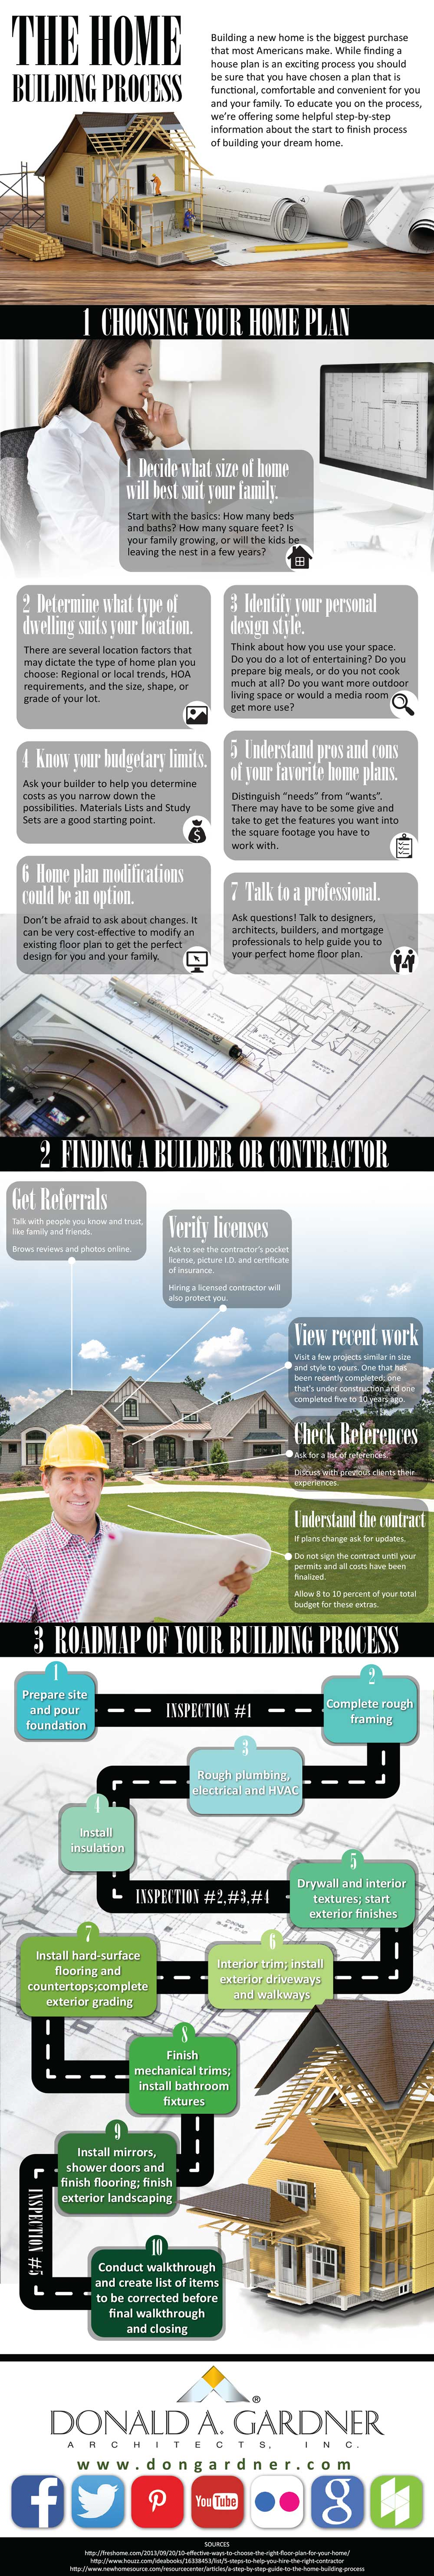 Home building process infographic.